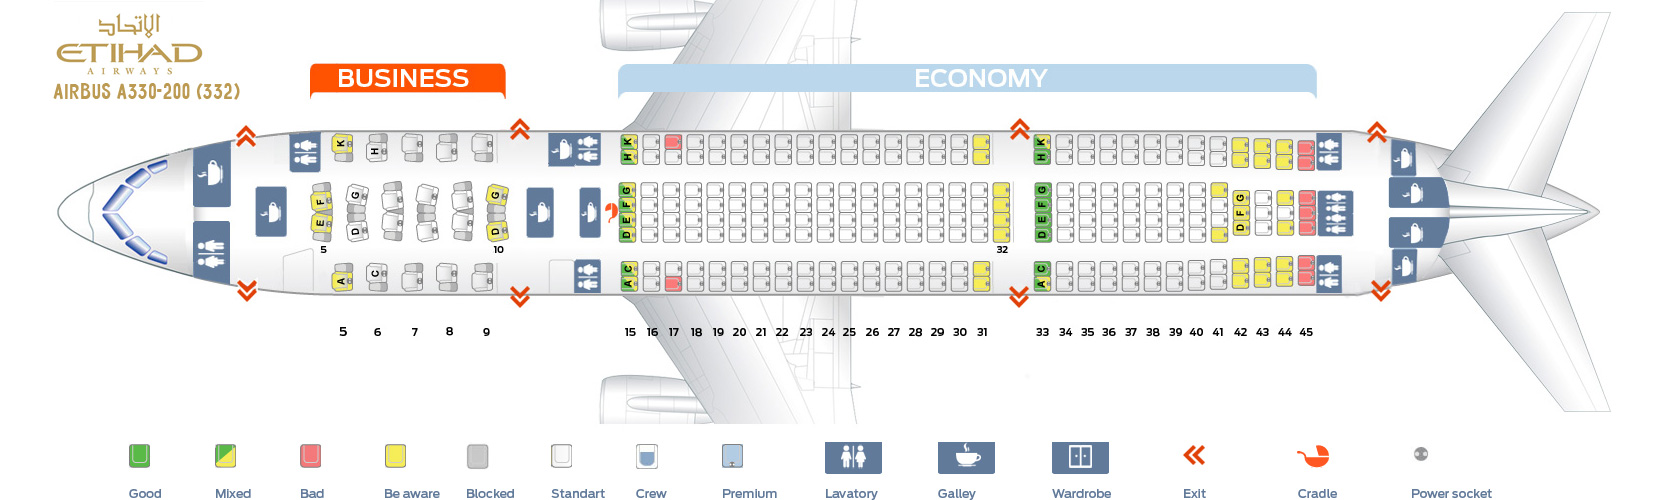 Etihad Seating Map Seat map Airbus A330 200 Etihad Airways. Best seats in the plane